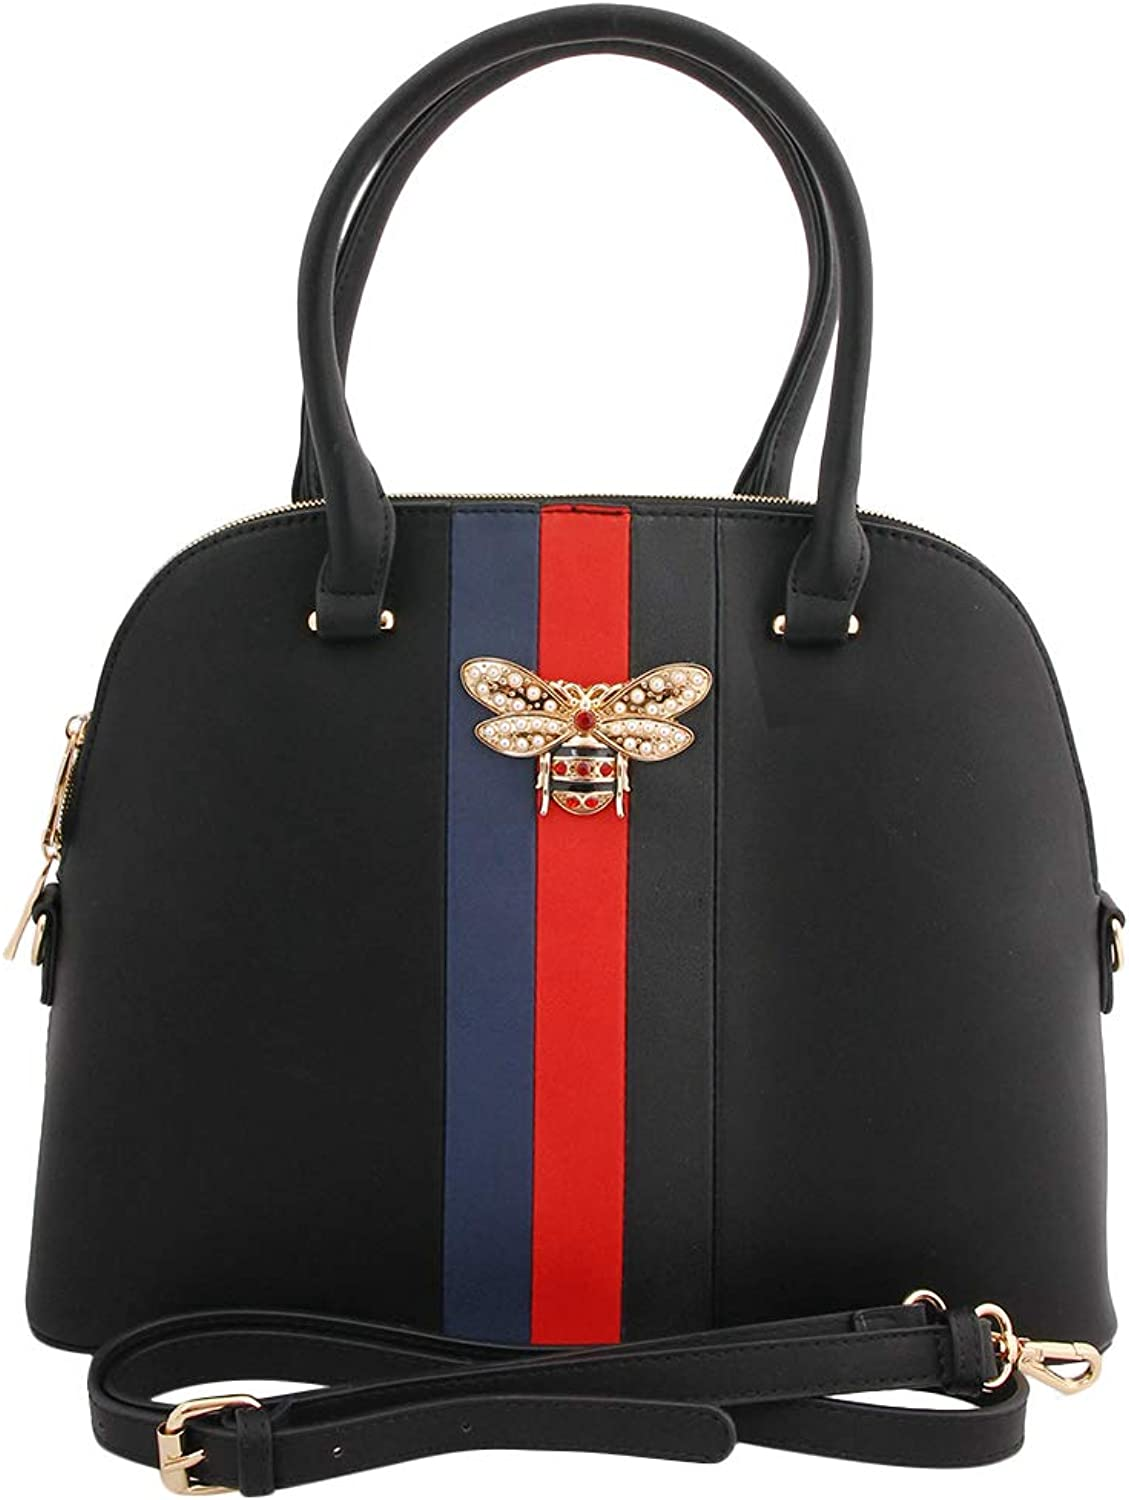 Black Vegan Leather Handbag with Stripes and Rhinestone Bee Detail